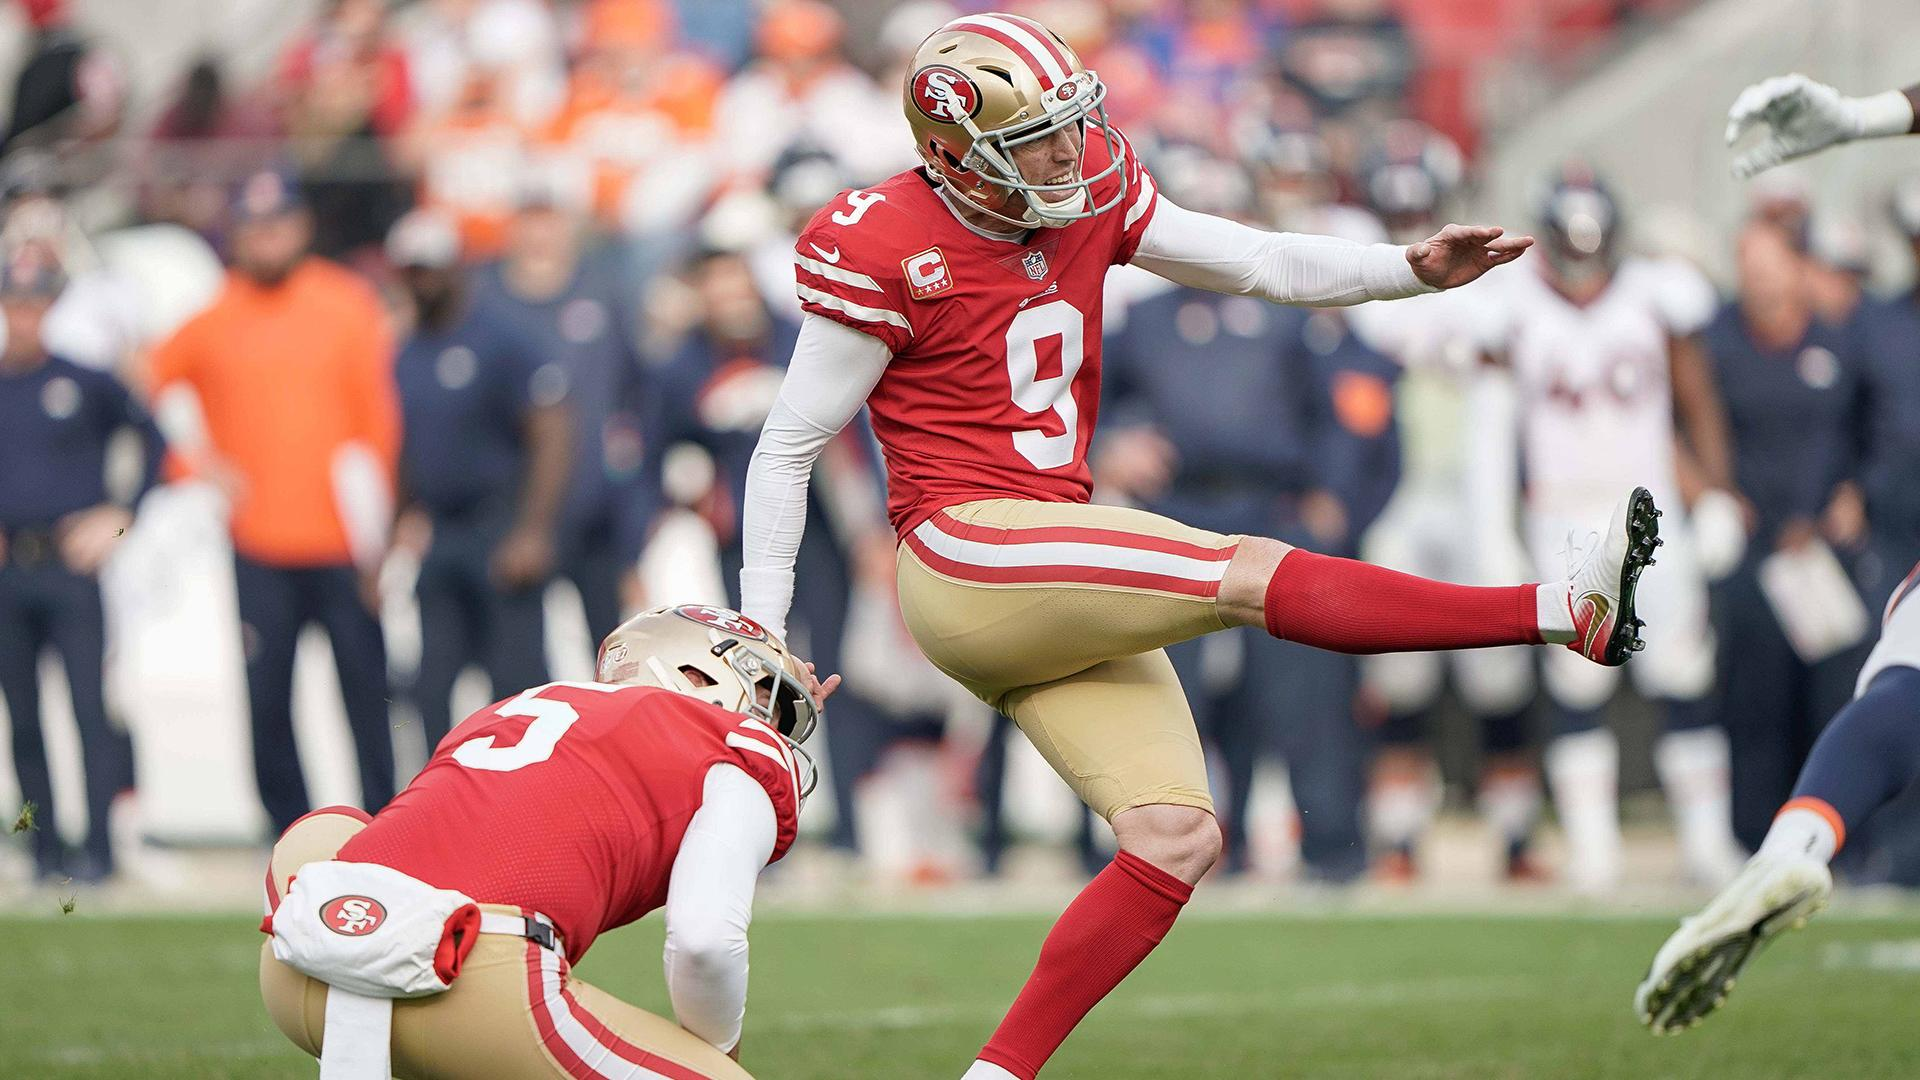 c82c5ad0 Former Bears kicker to 49ers' Robbie Gould: 'Be careful what you ...